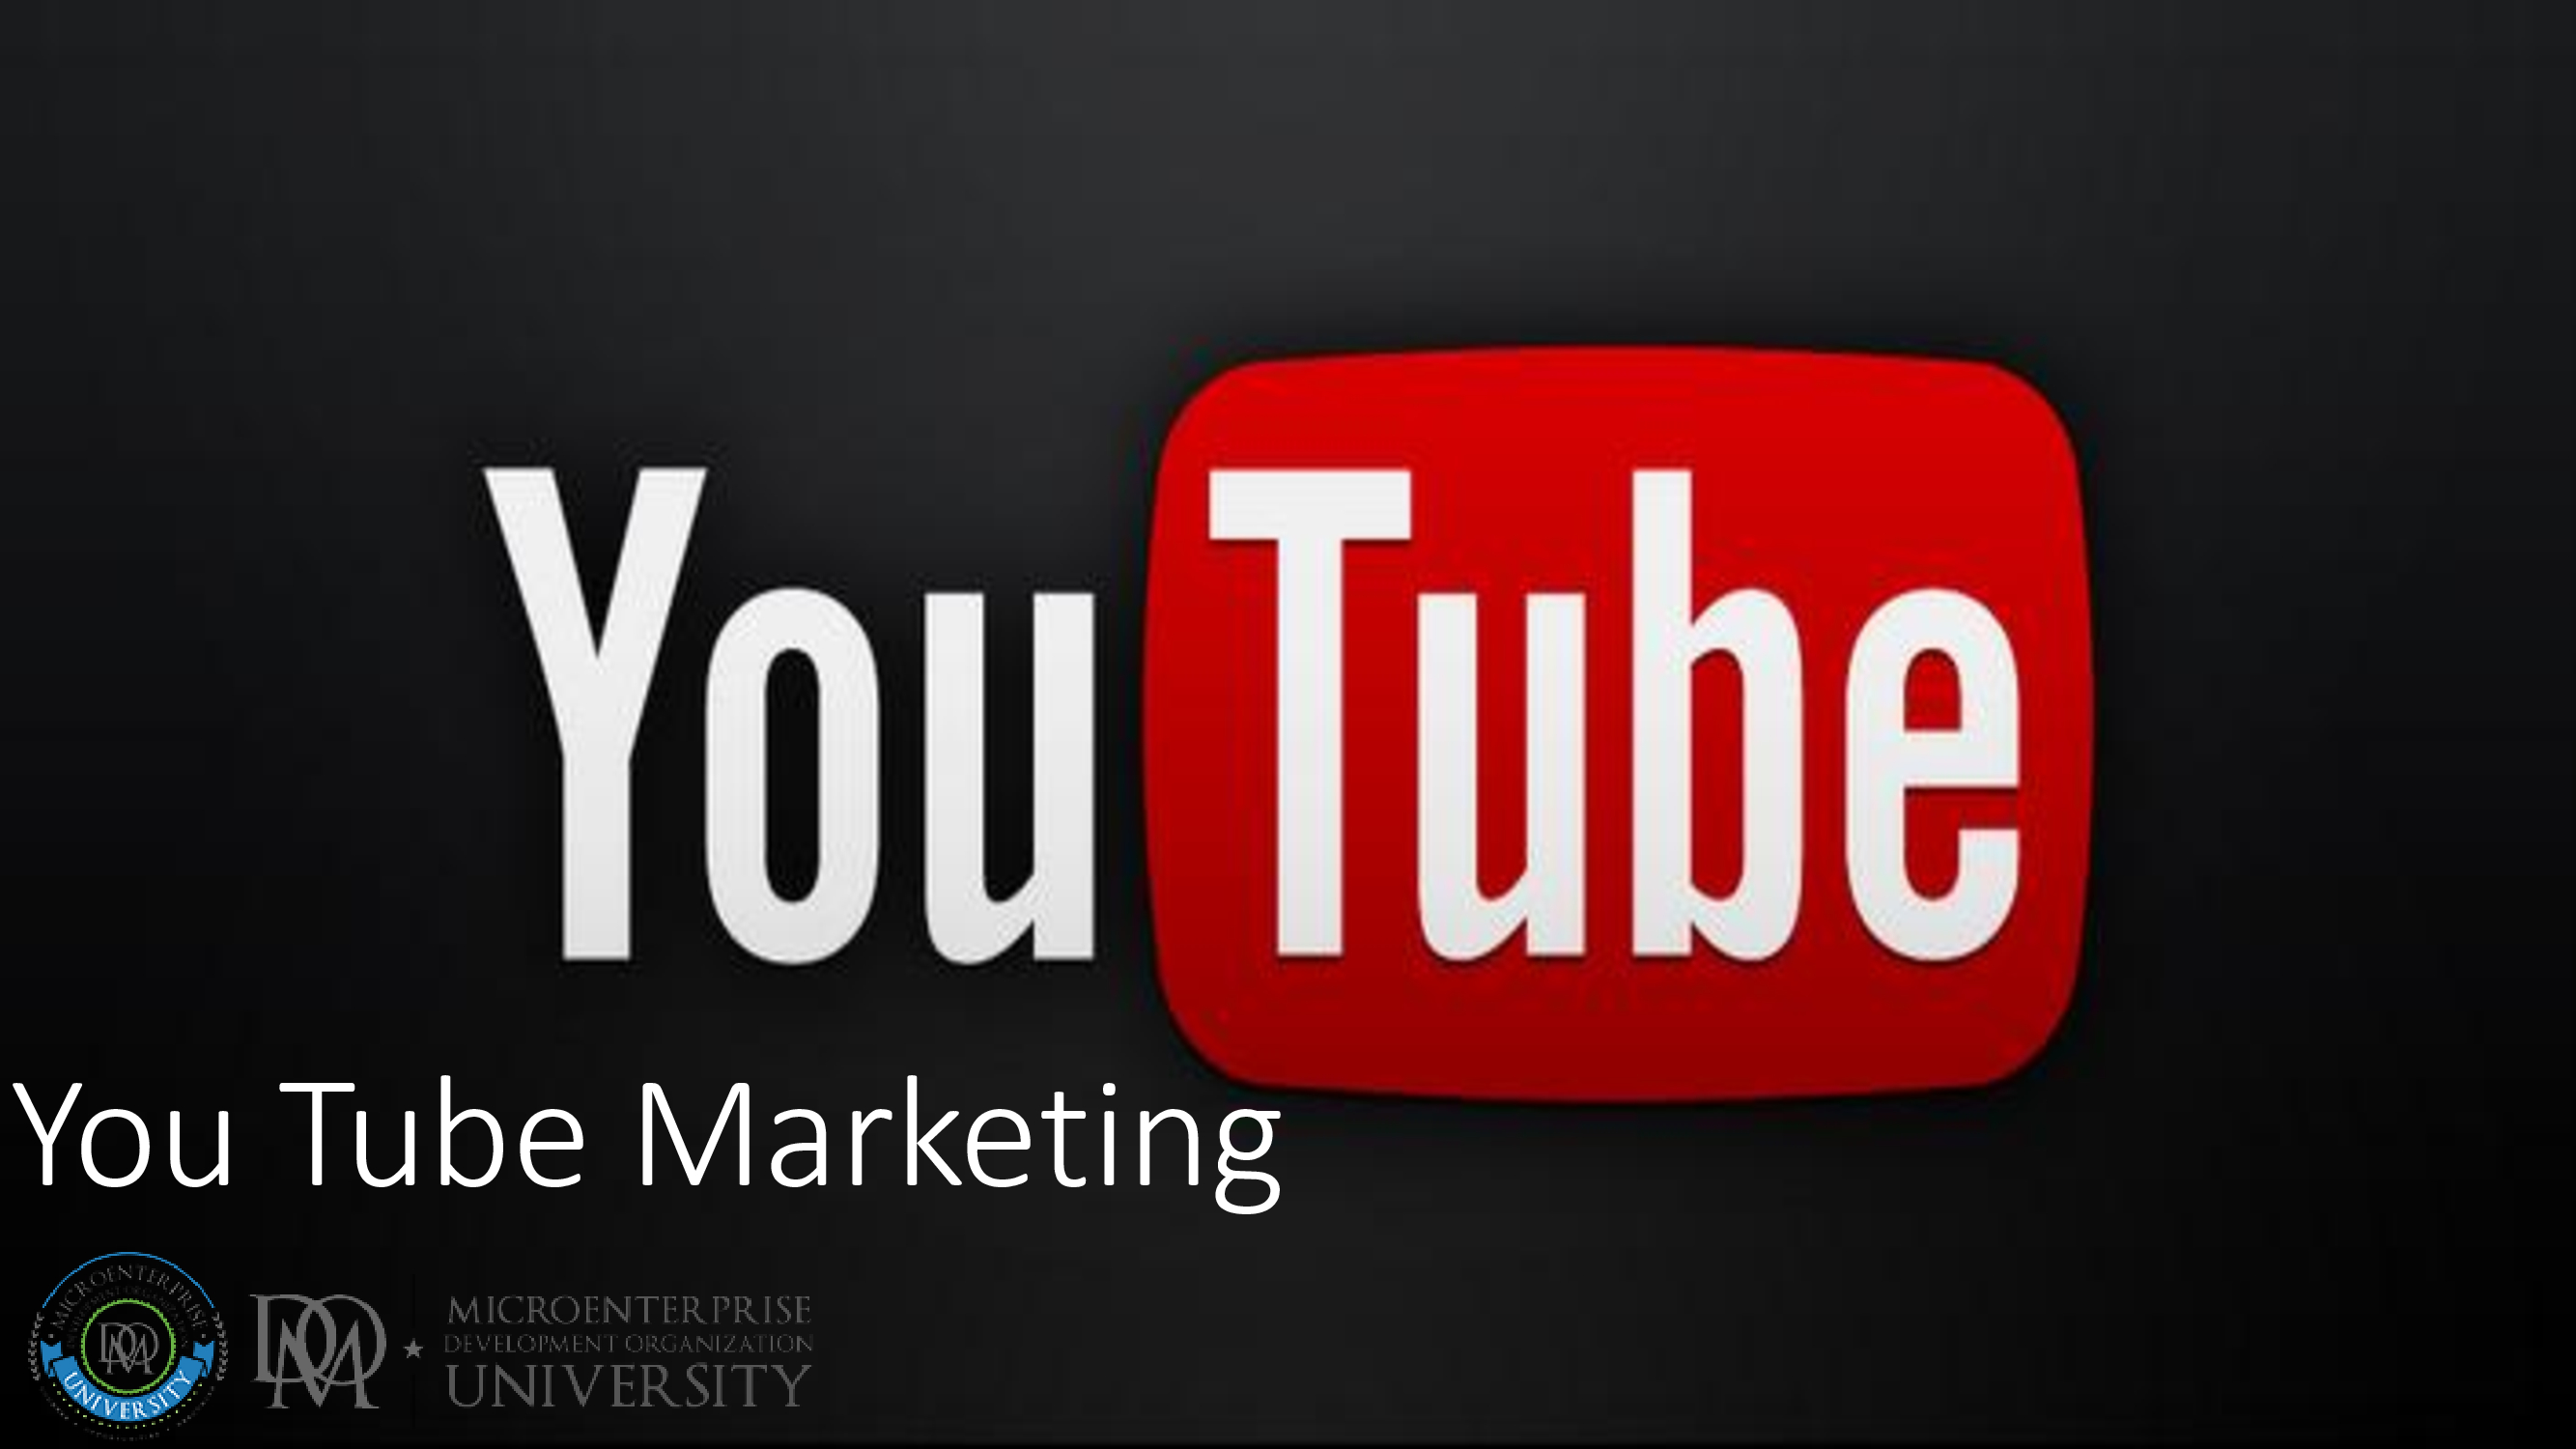 Video-0-You-Tube-Marketing